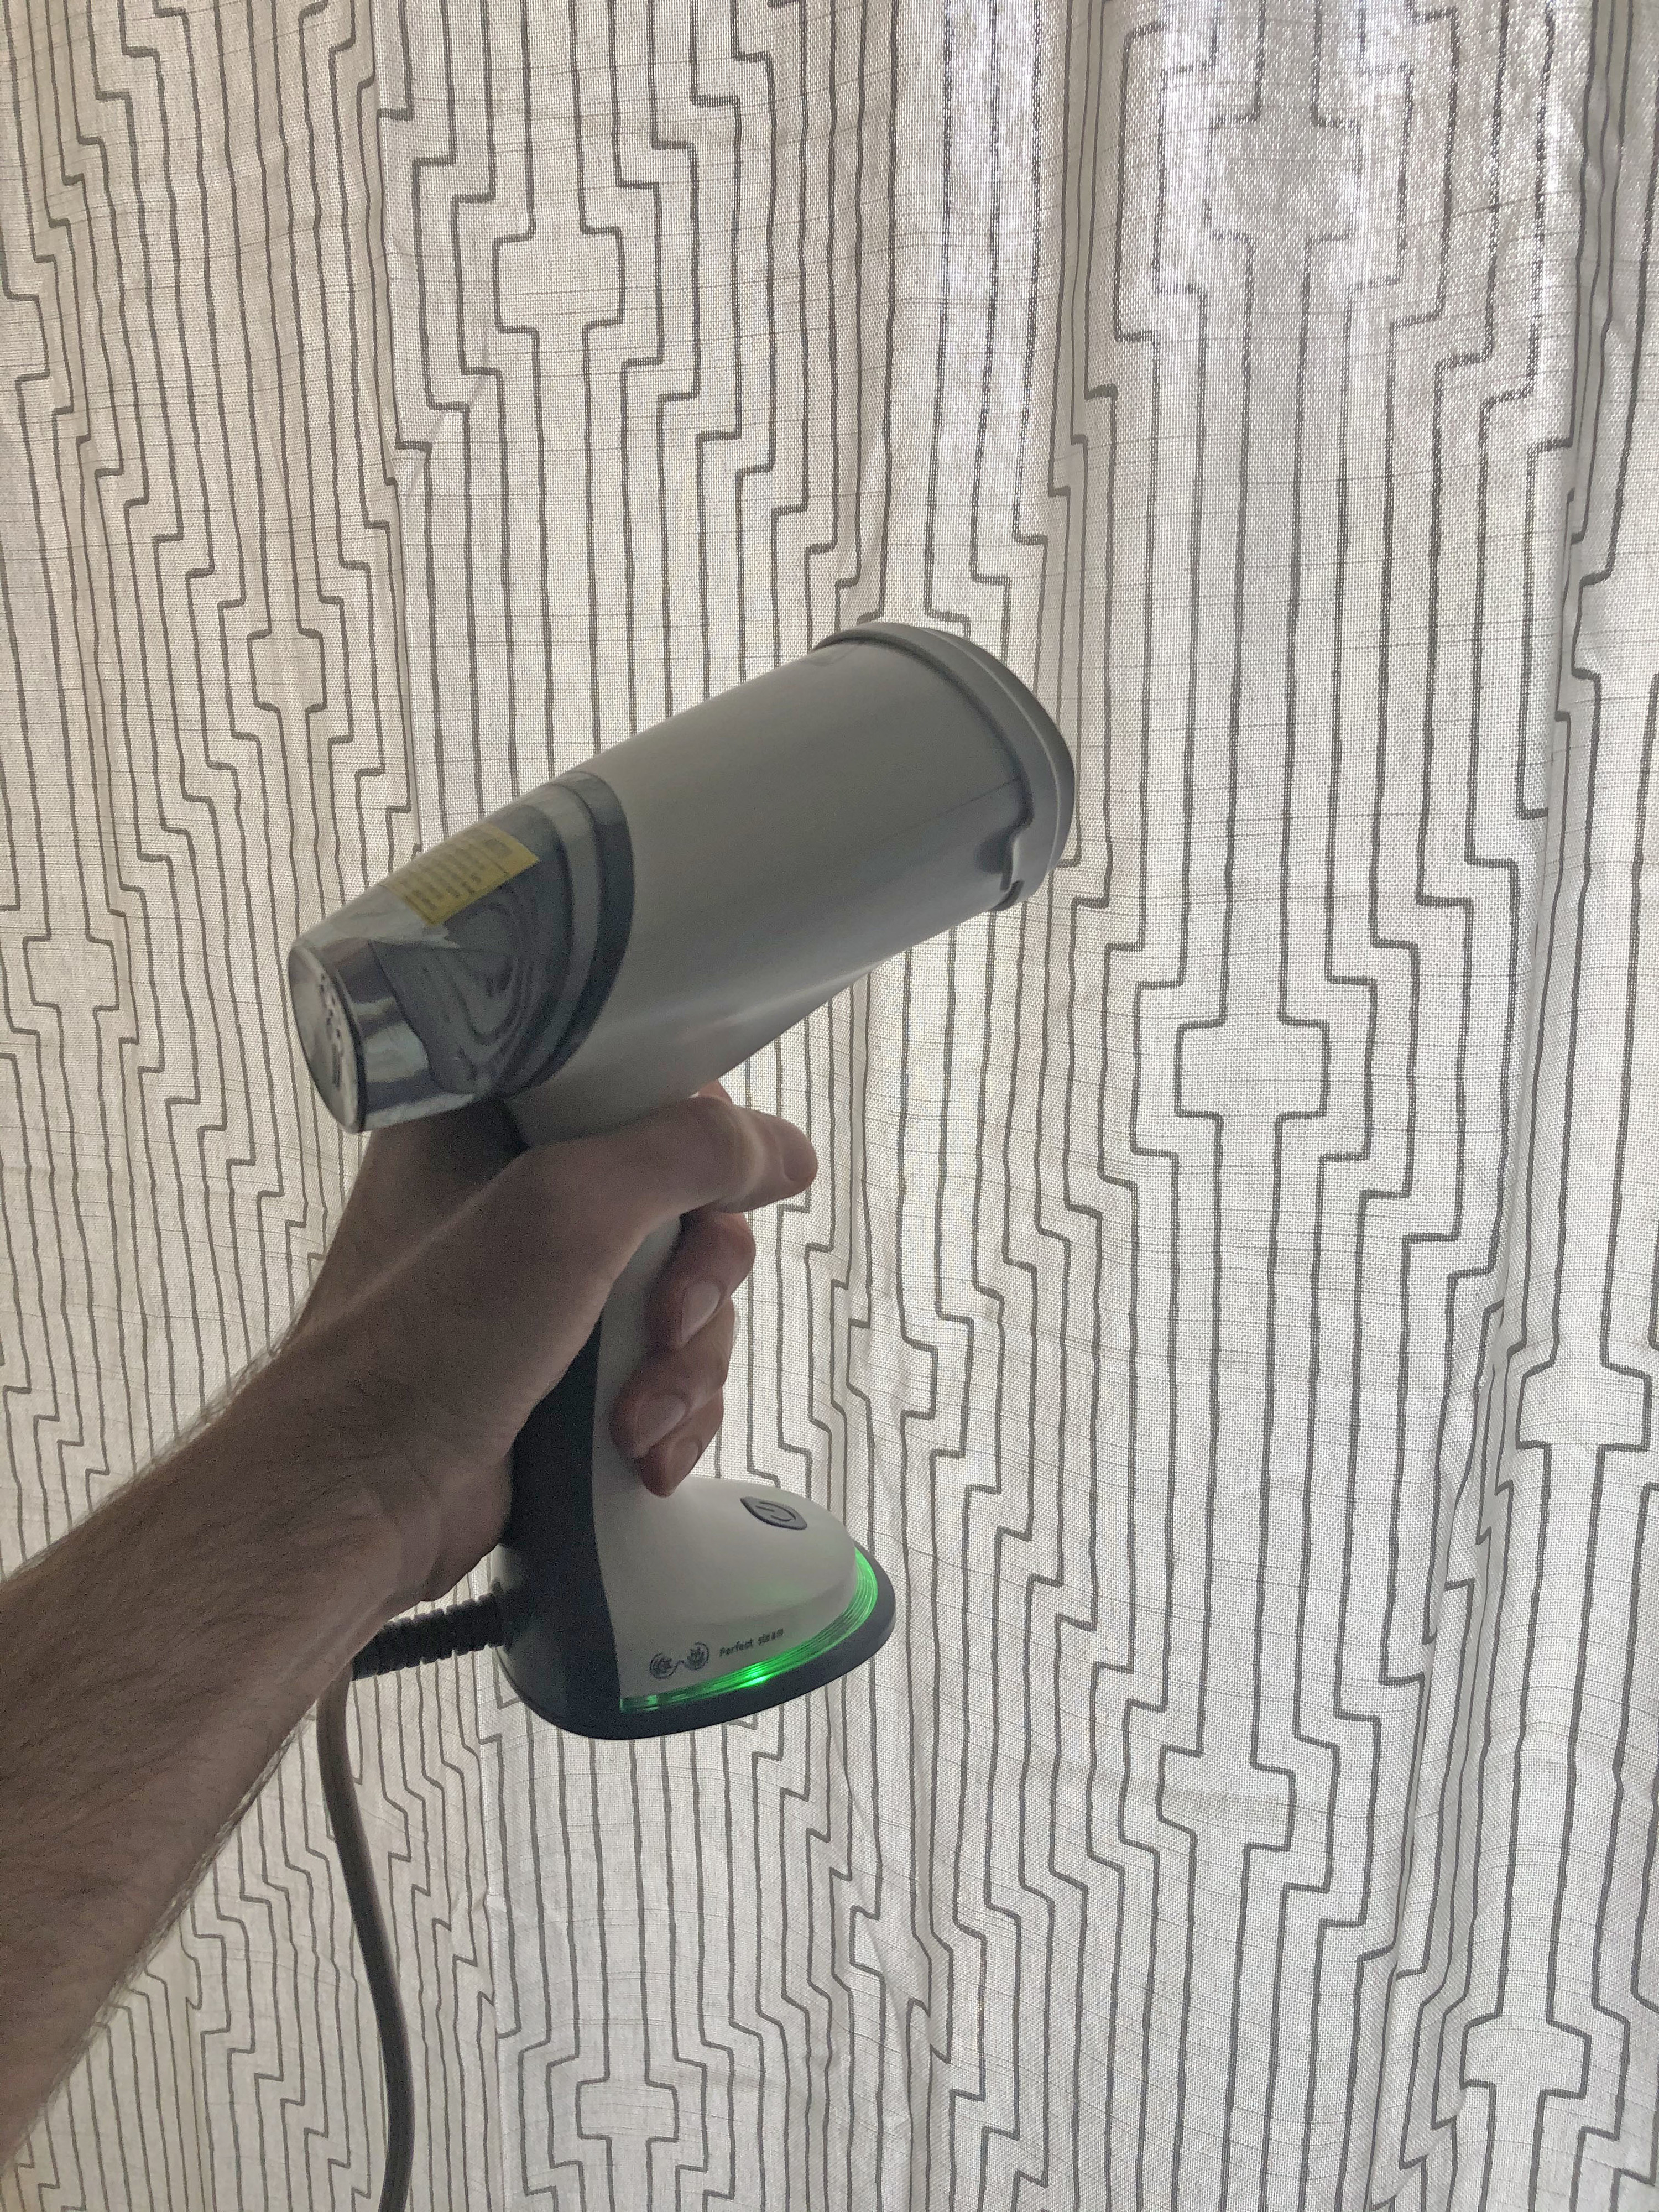 Picture of me steaming the curtains to get out the wrinkles.